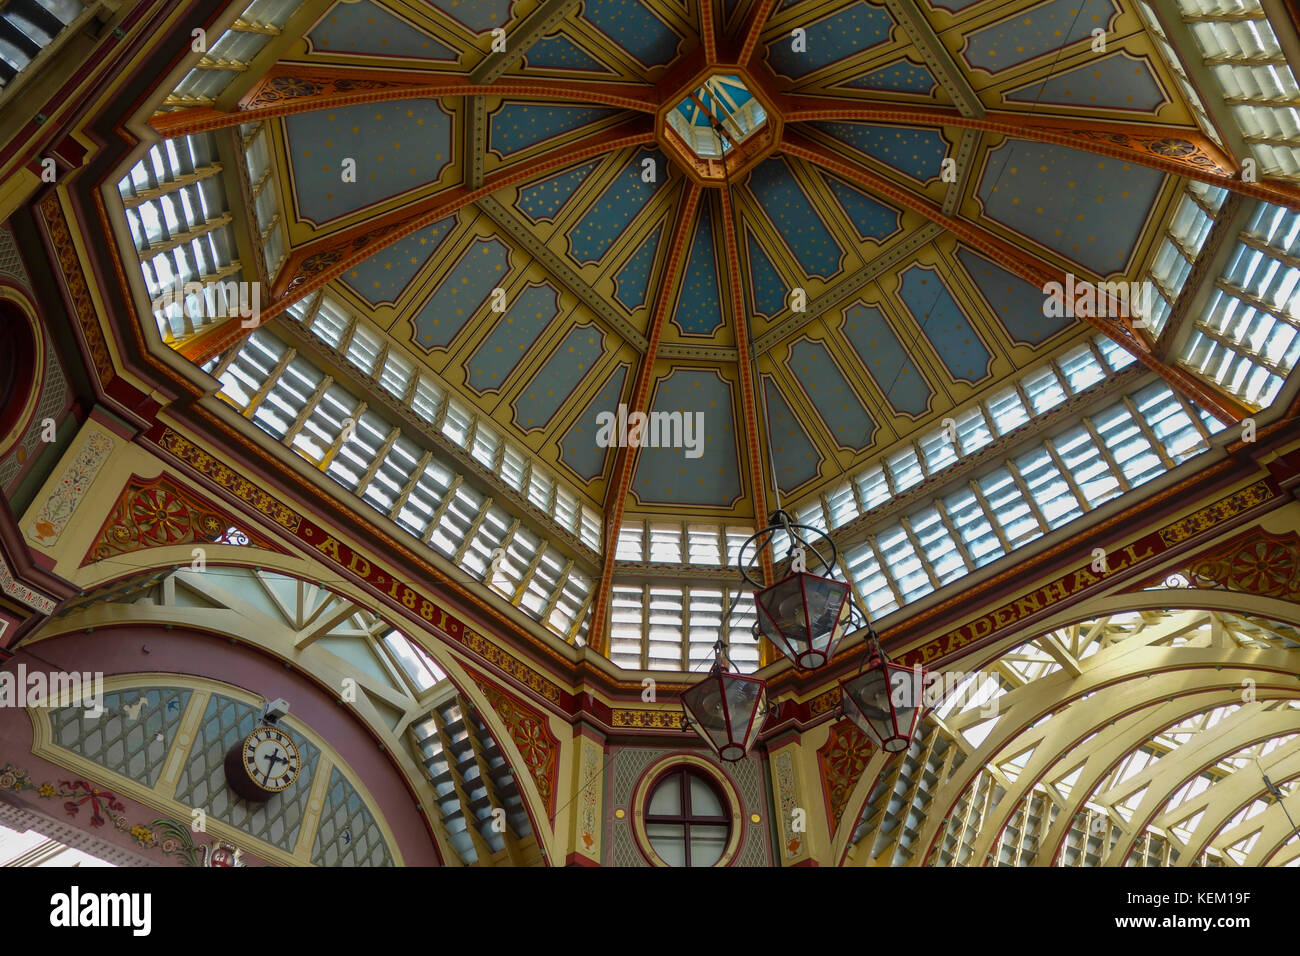 Leadenhall Market, City of London, London, England, United Kingdom, Europe - Stock Image